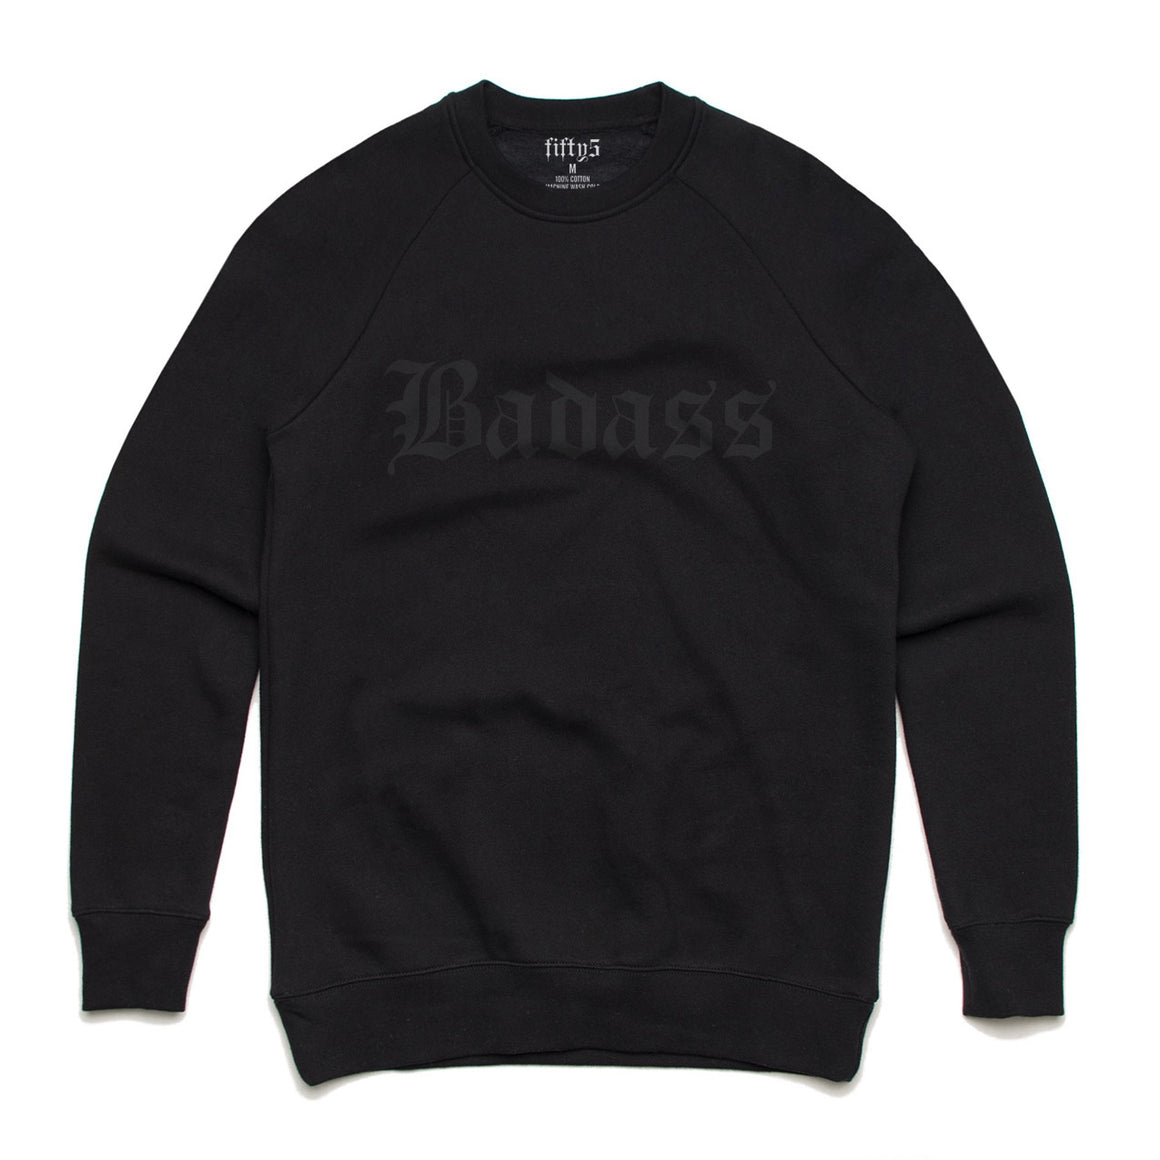 BadAss Black on Black Premium Box Crew Unisex Sweatshirt